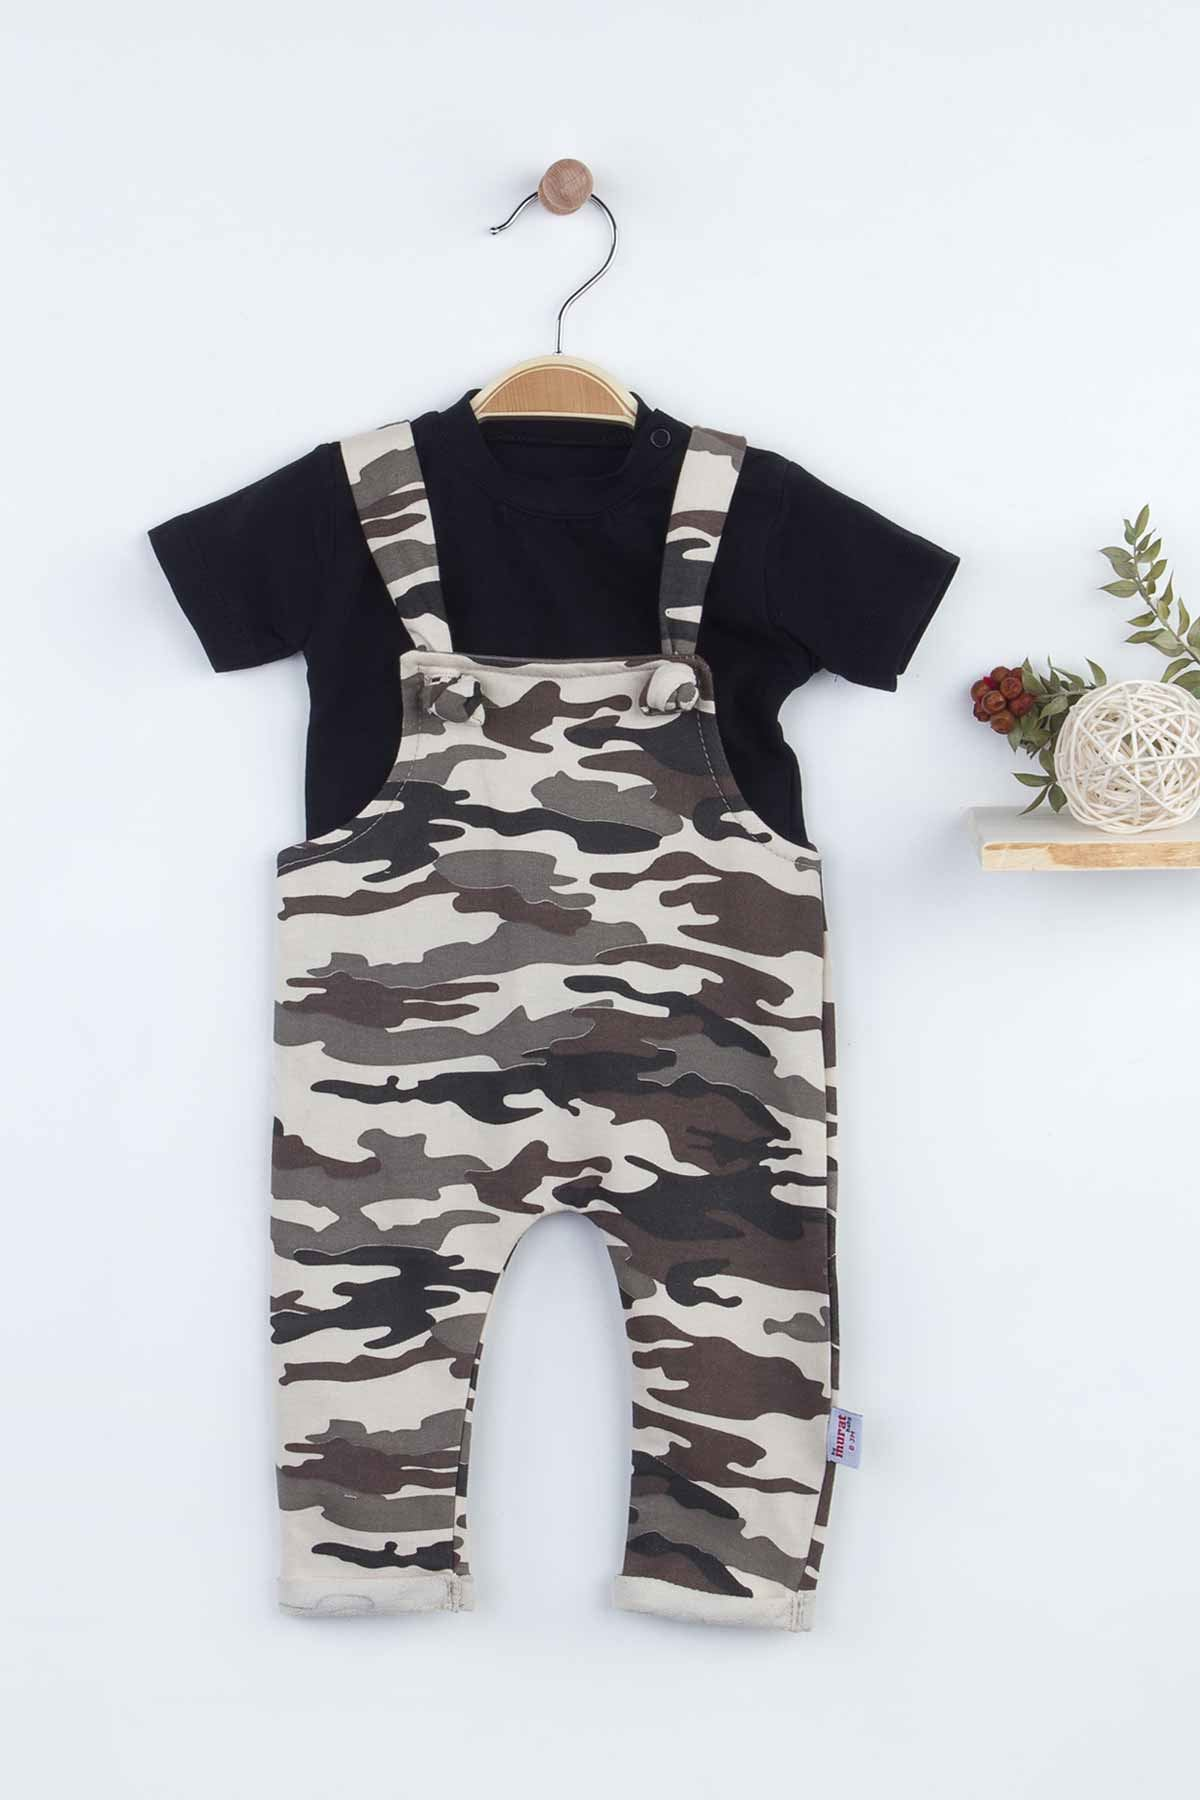 Baby Boy Rompers Soldier Fashion 2021 New Season Style Babies Clothes Outfit Cotton Comfortable Underwear for Boys Baby